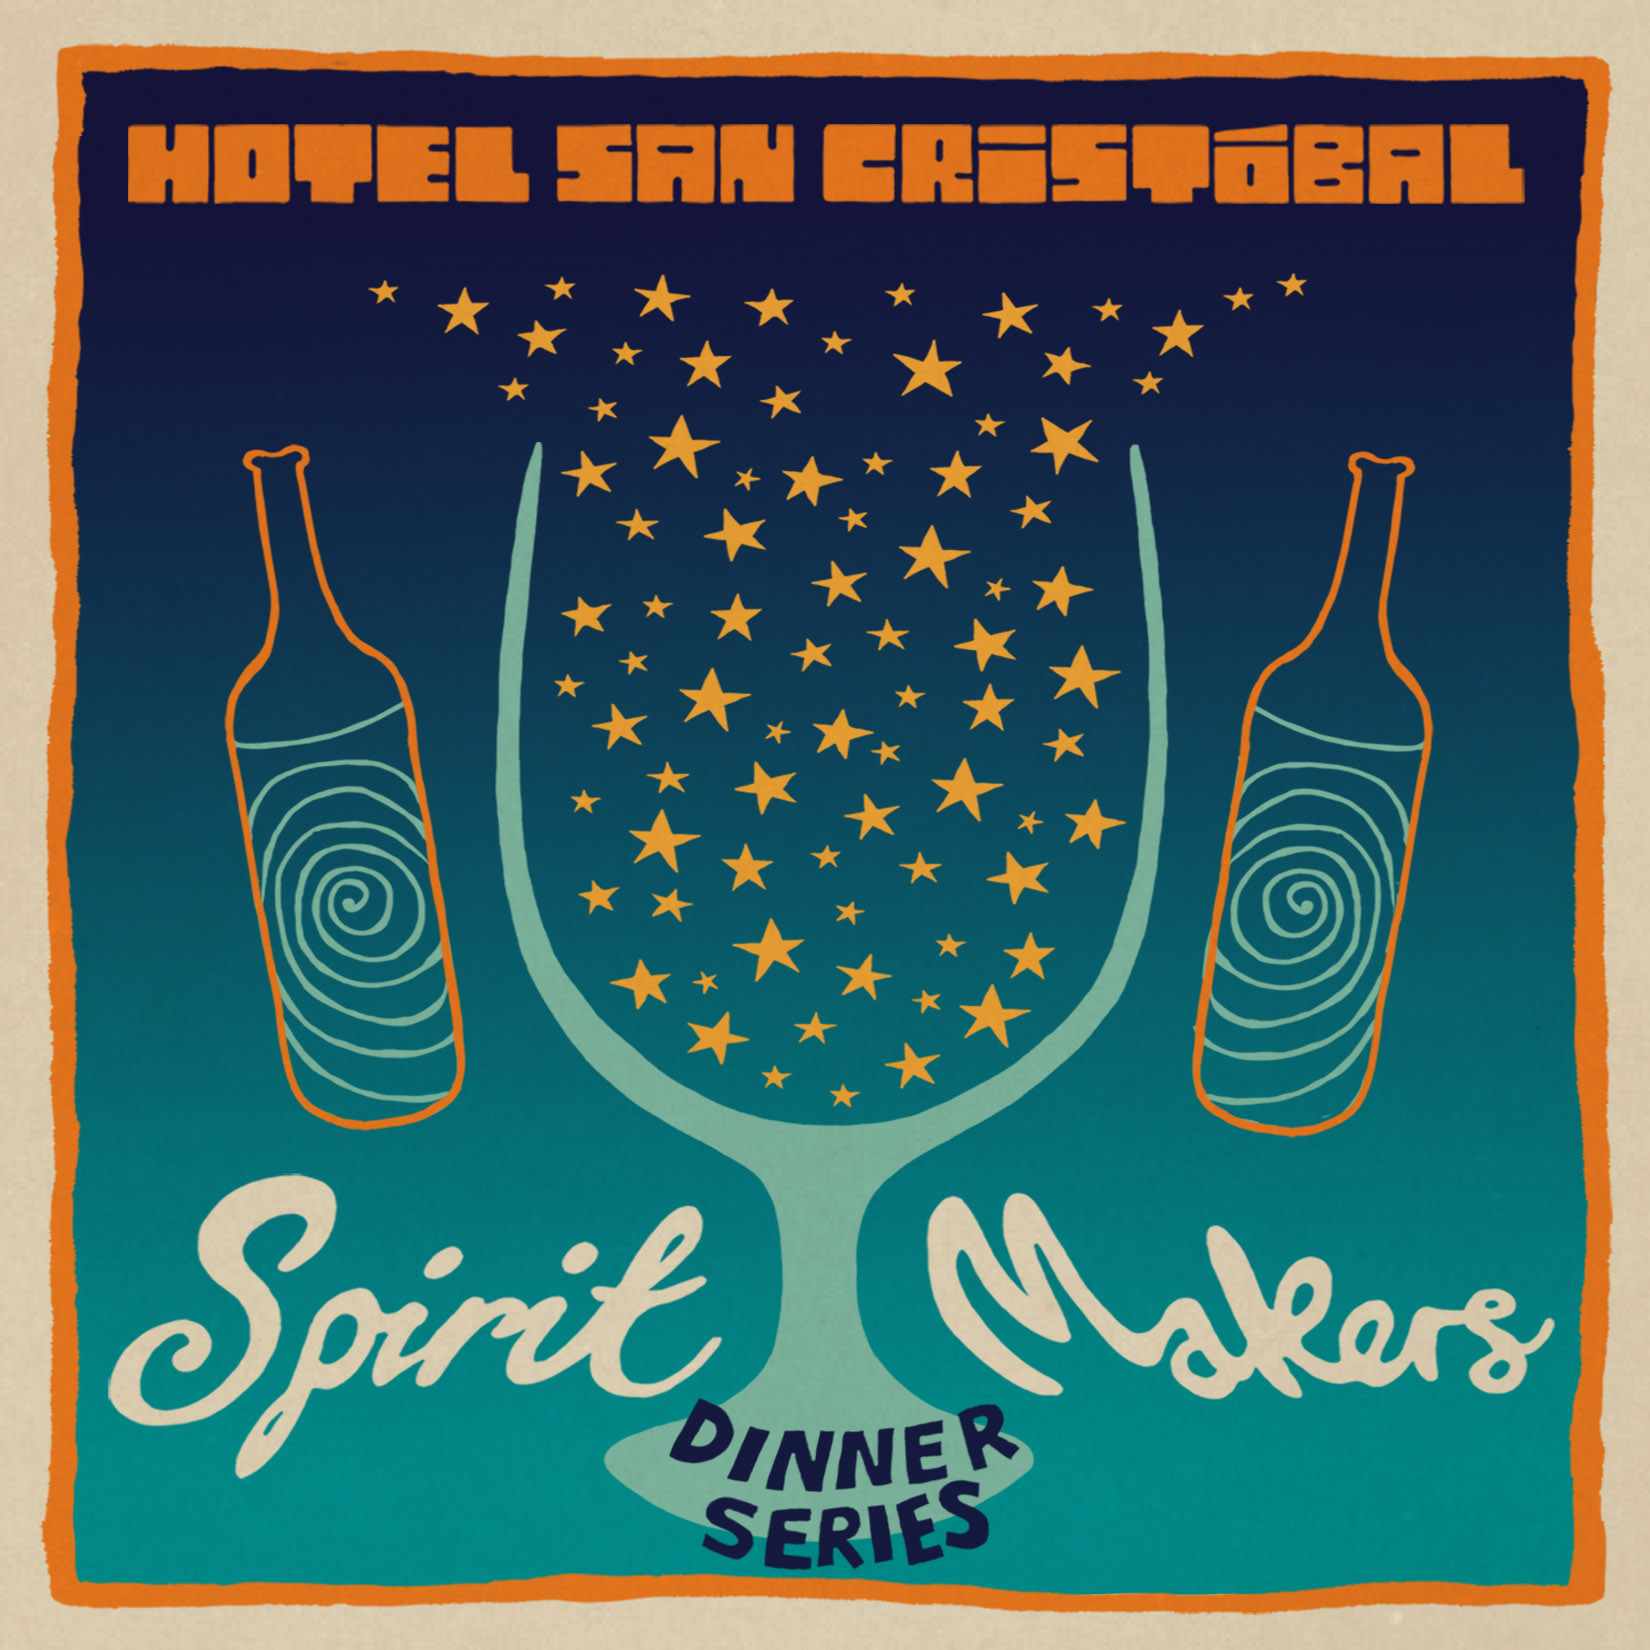 Click to read the full Spirit Makers Dinner Series with Vena Cava post